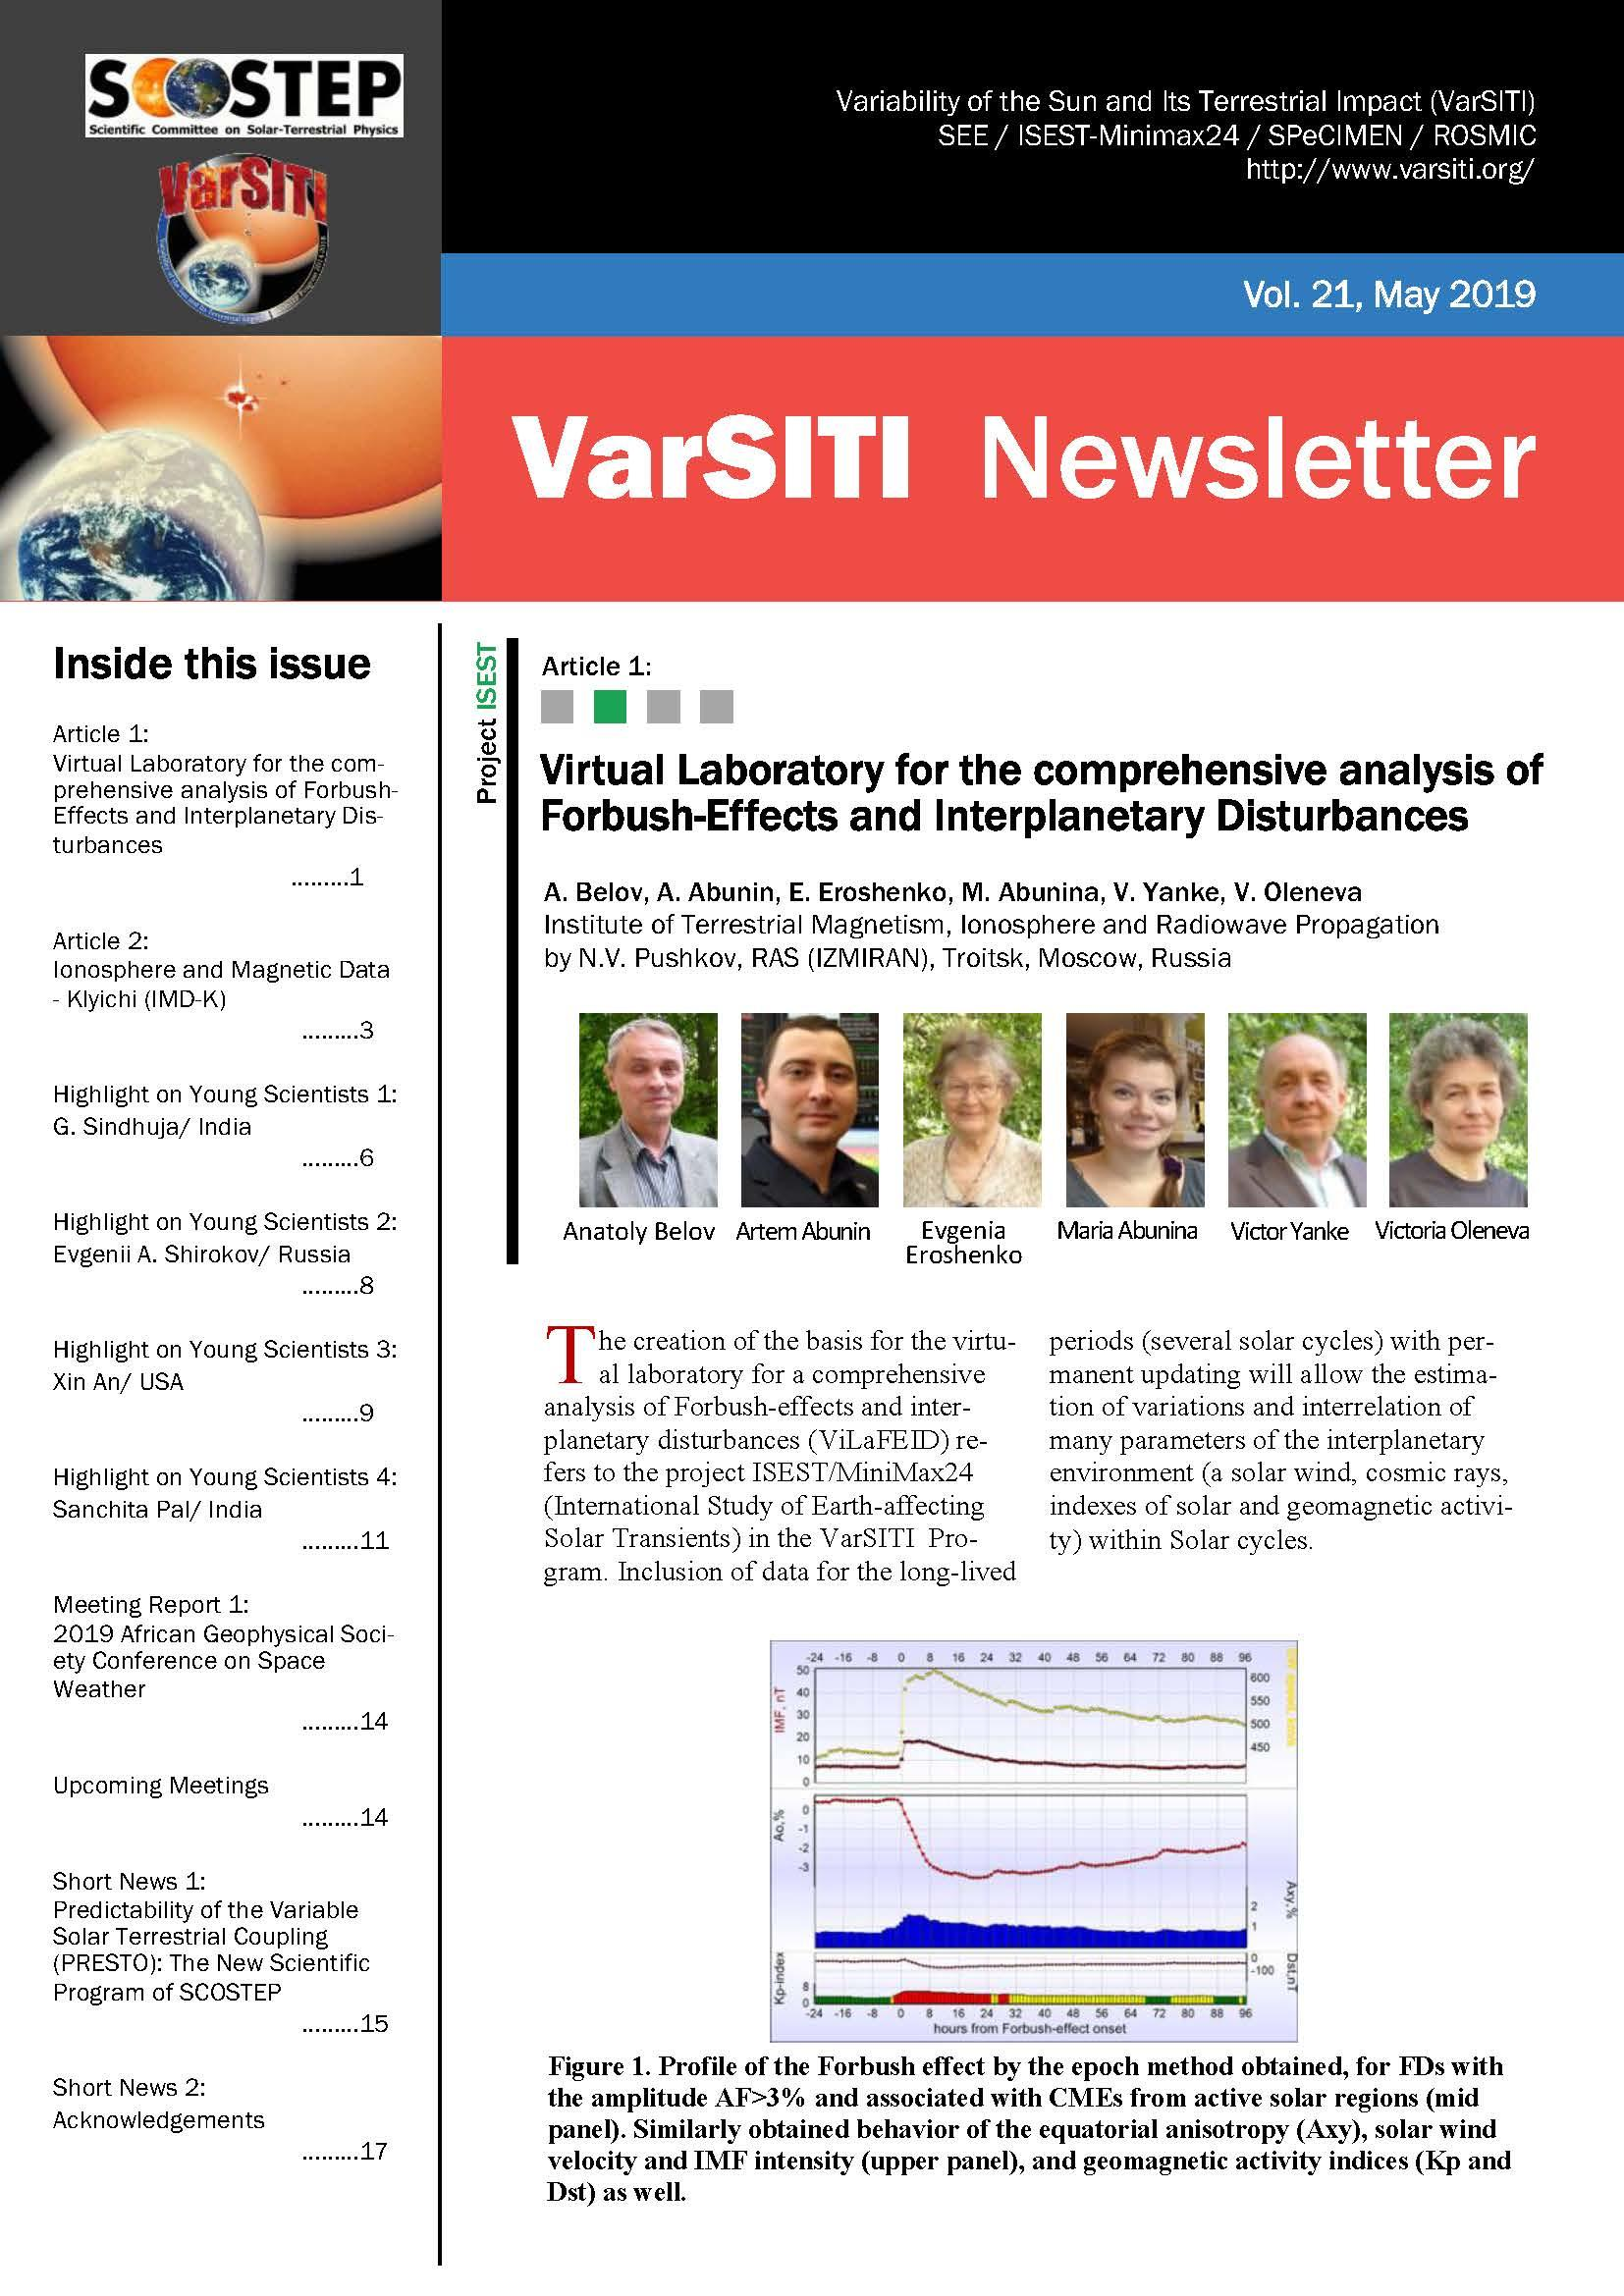 VarSITI_Newsletter_Vol21.jpg